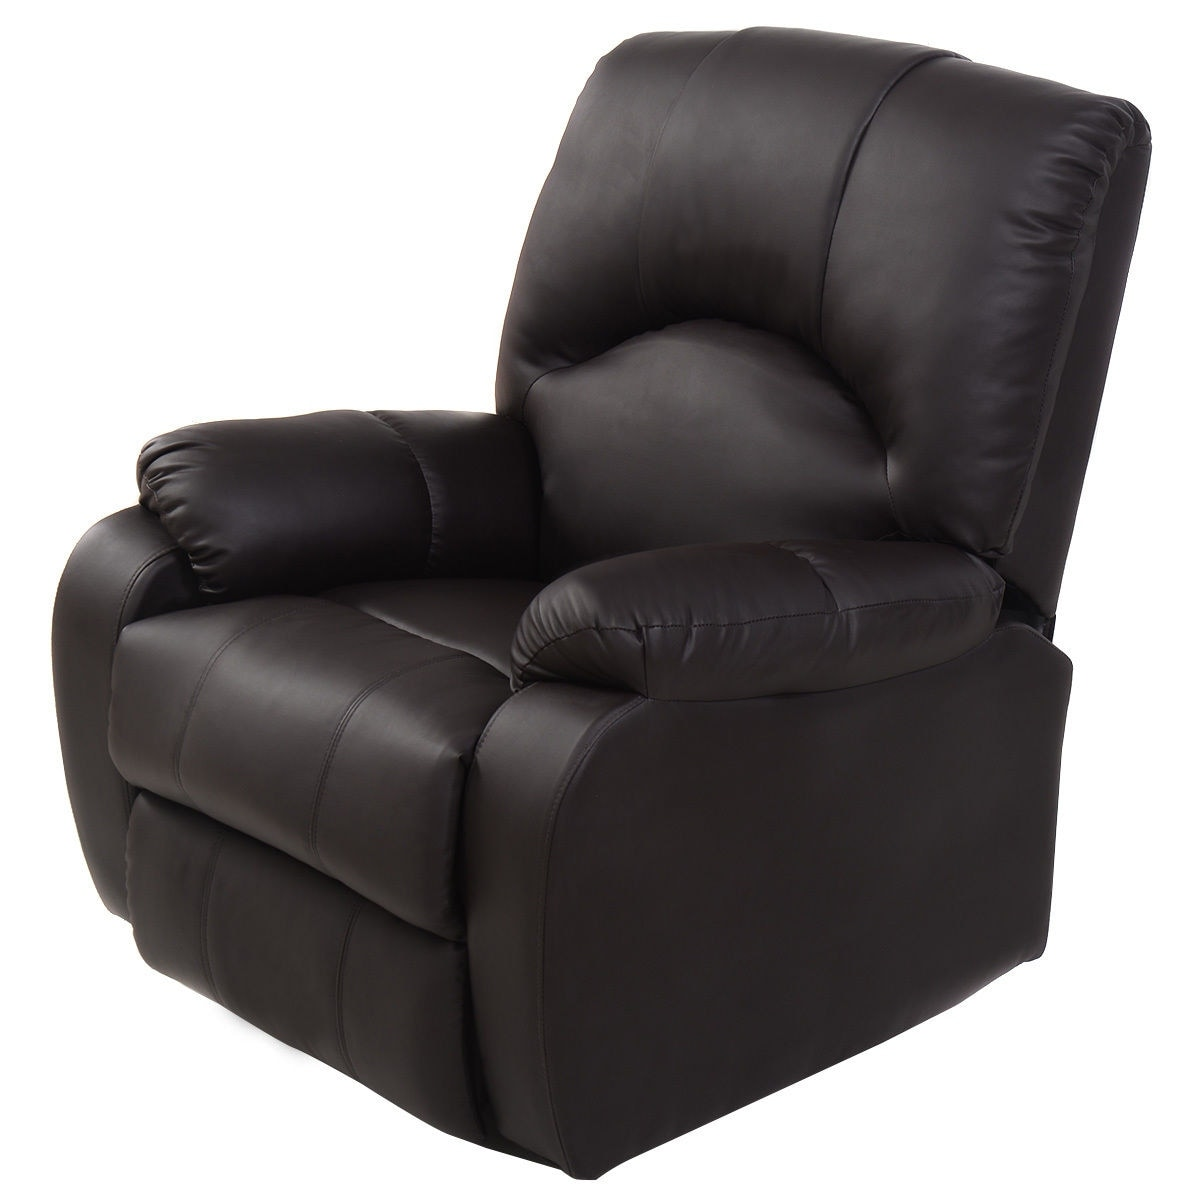 Costway Massage Recliner Sofa Chair Deluxe Ergonomic Lounge Heated w/Control Brown